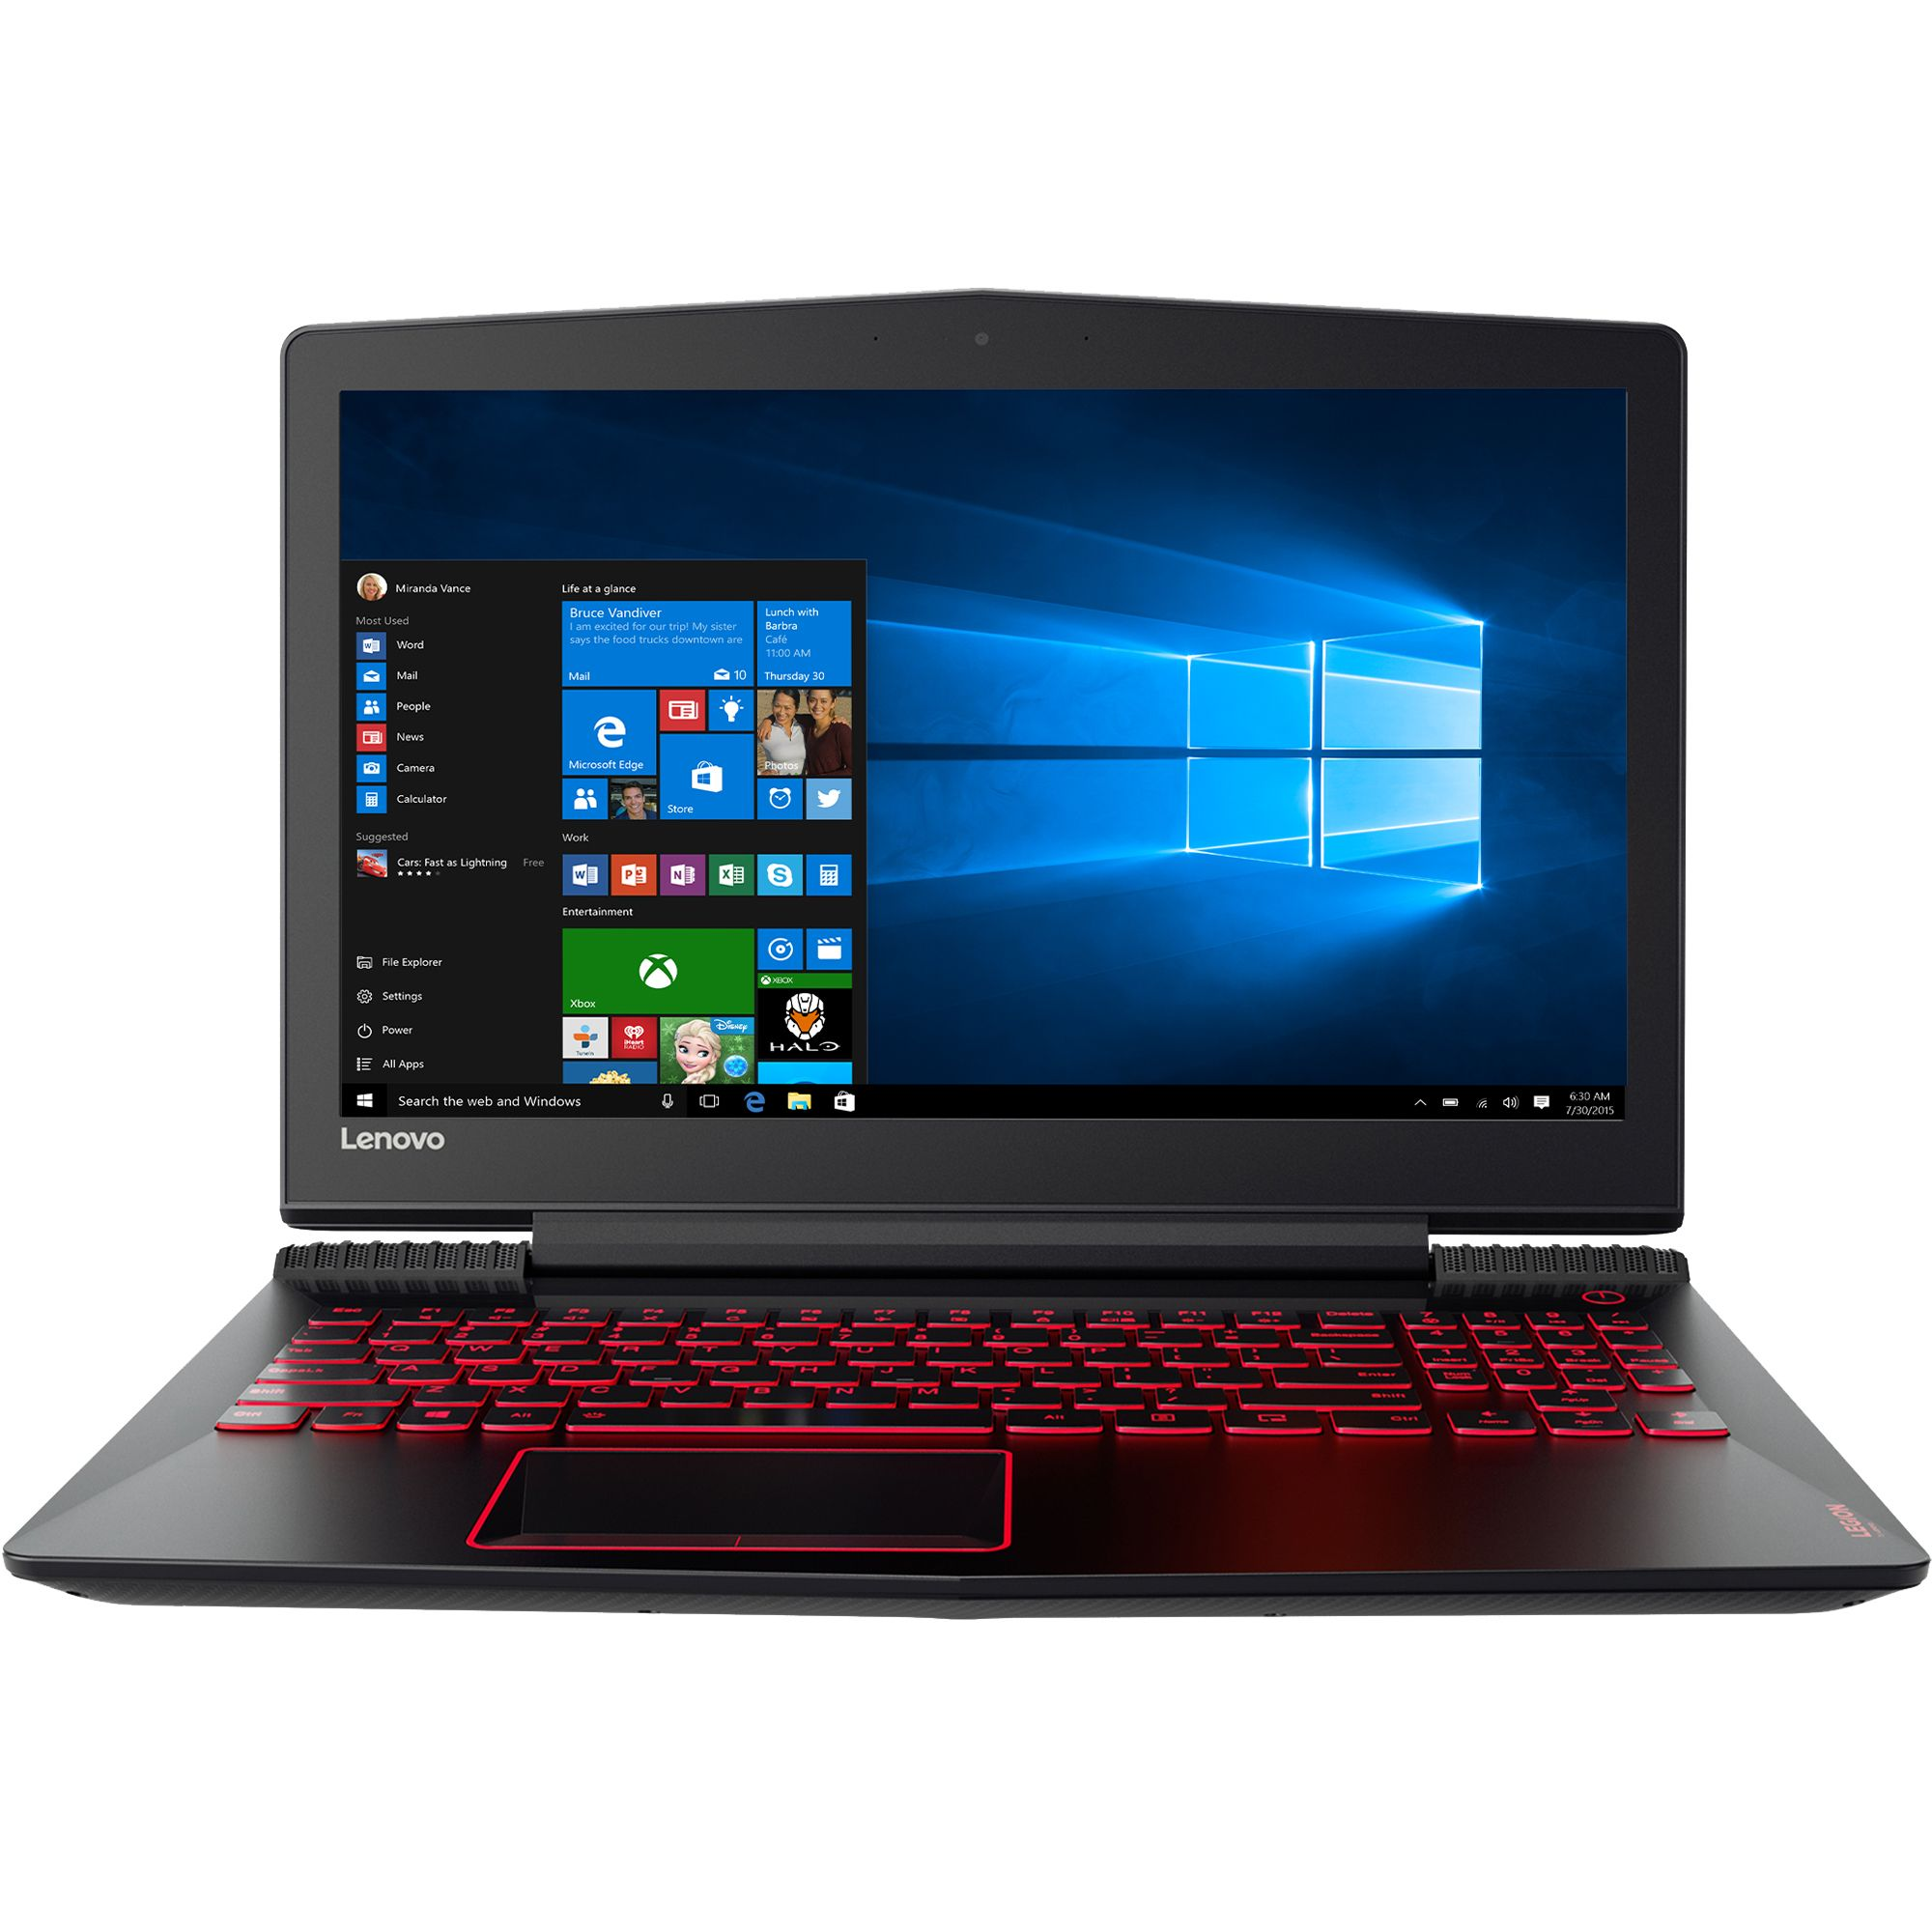 Notebook Lenovo Legion Y520 15.6 Full HD Intel Core i7-7700HQ GTX 1050-4GB RAM 8GB SSD 256GB FreeDOS Negru